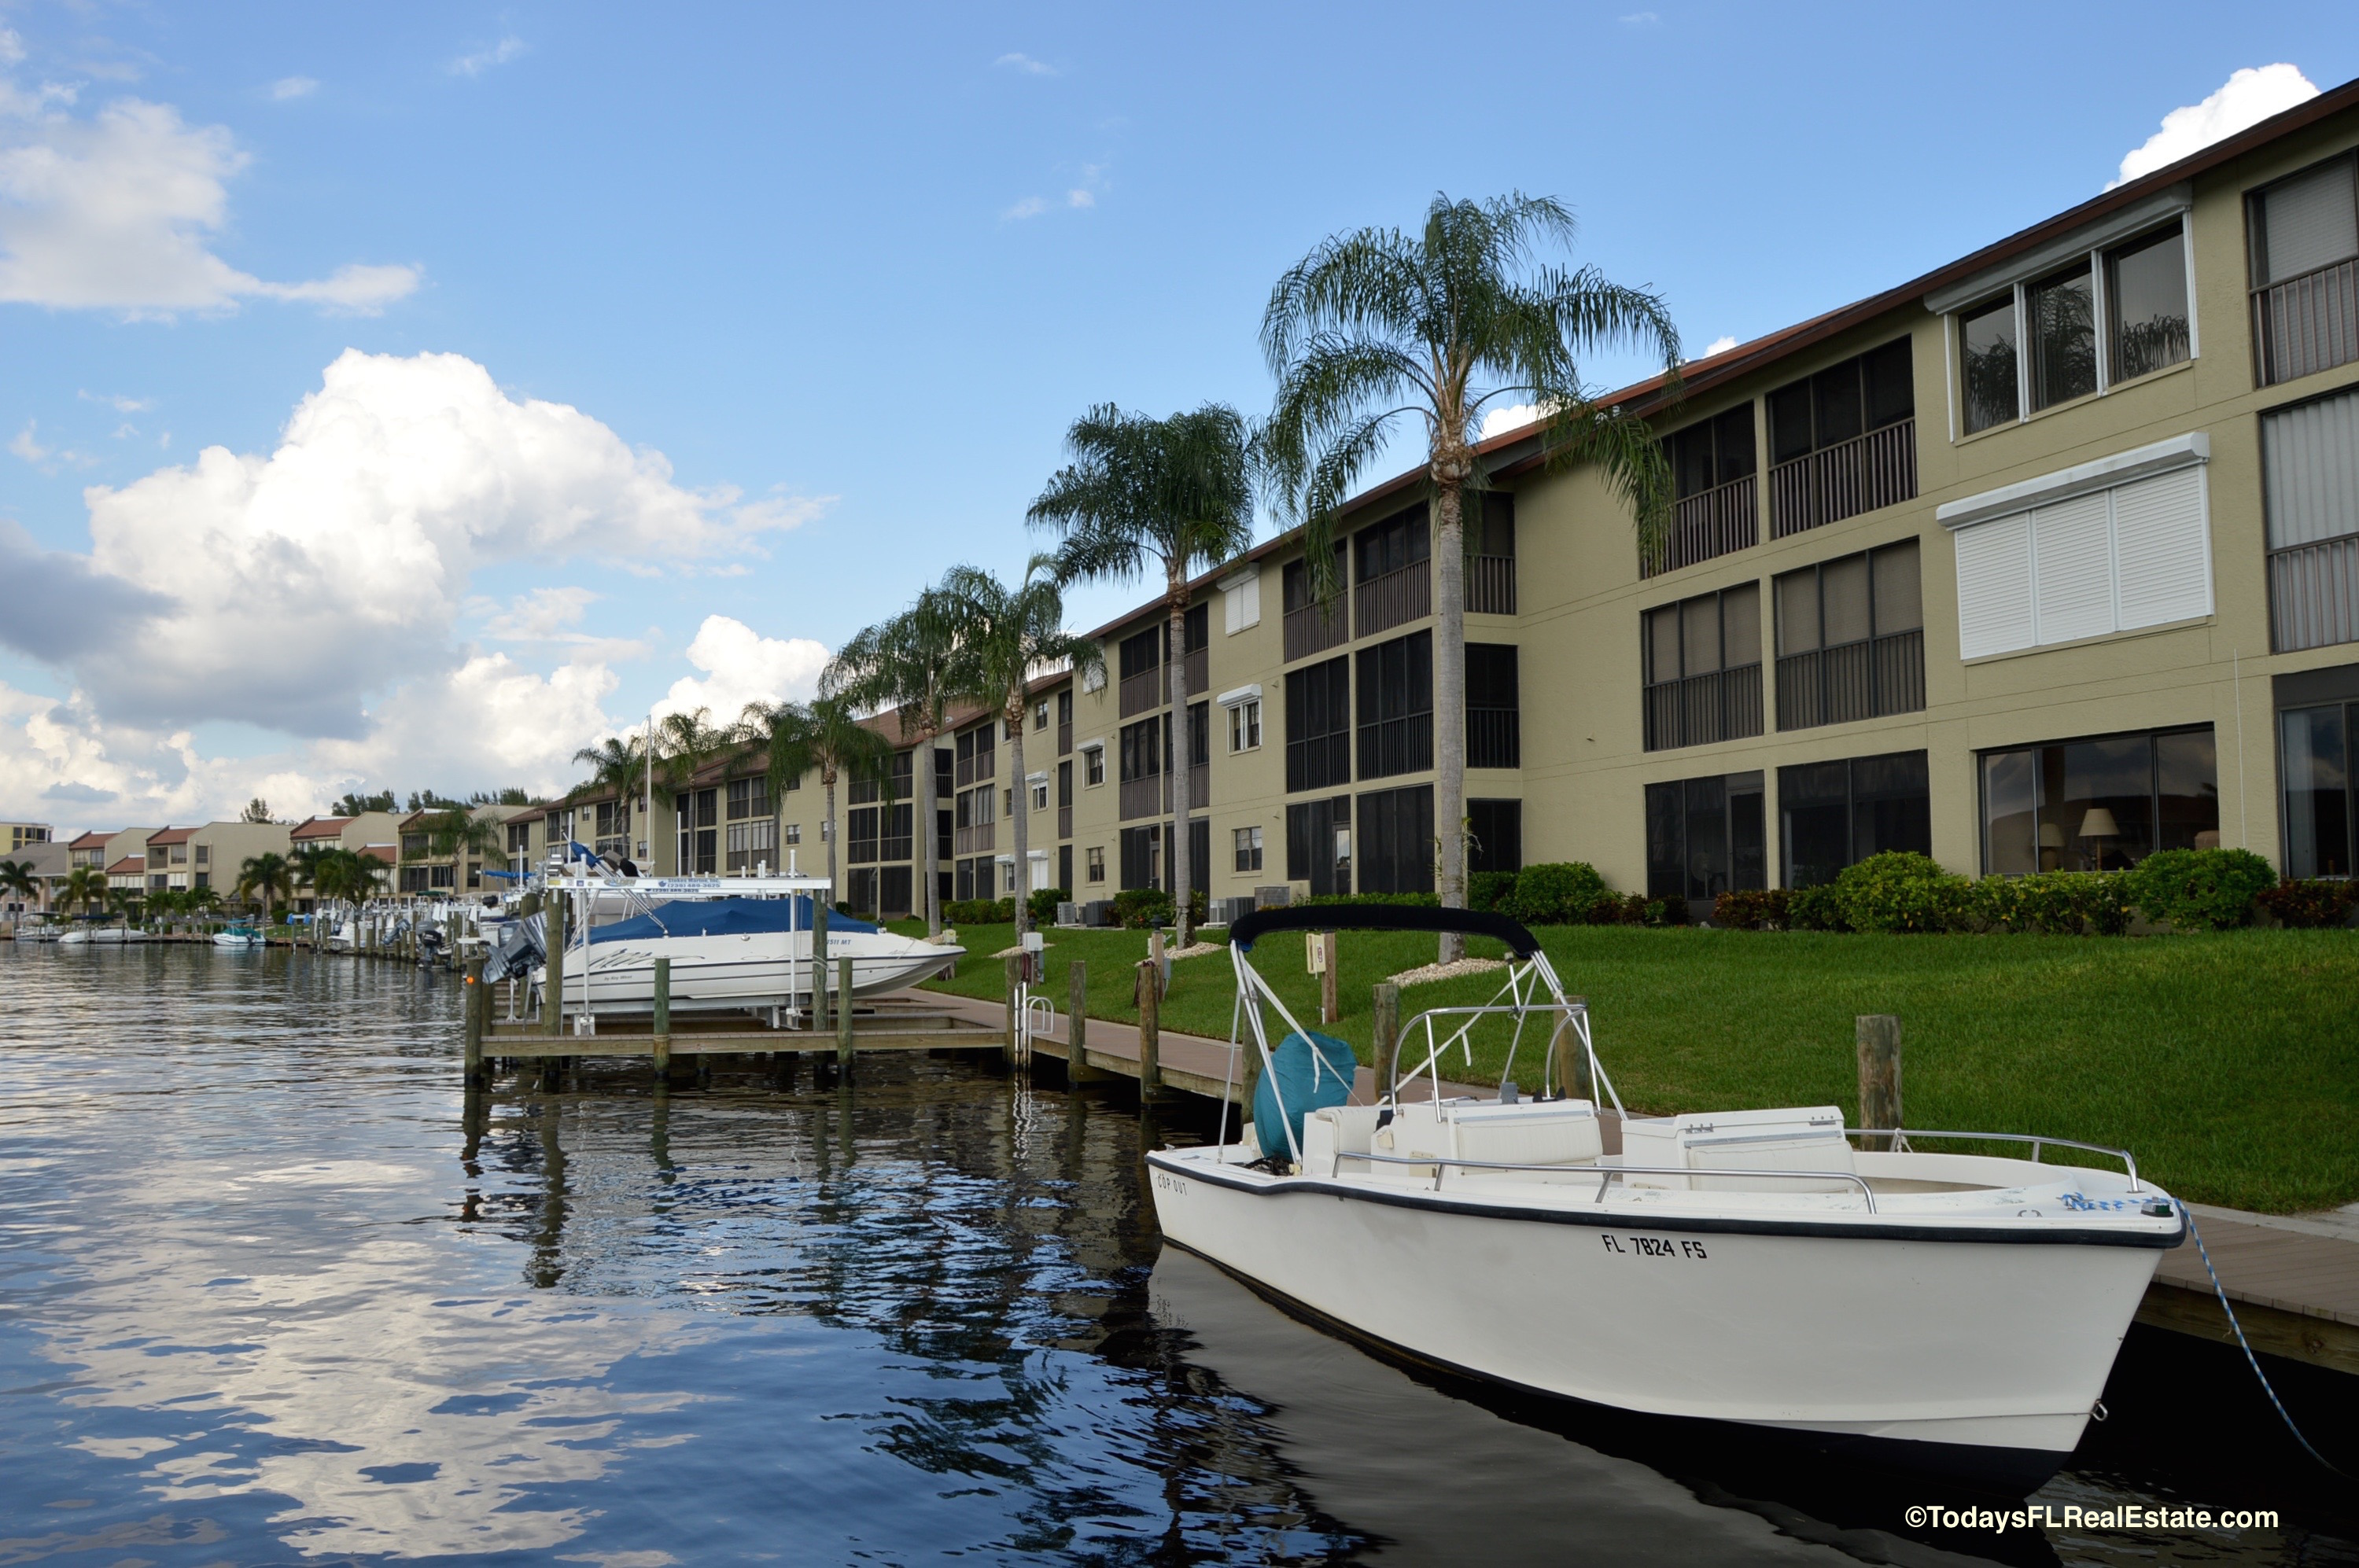 cape coral condos for sale - cape coral real estate - mls listings